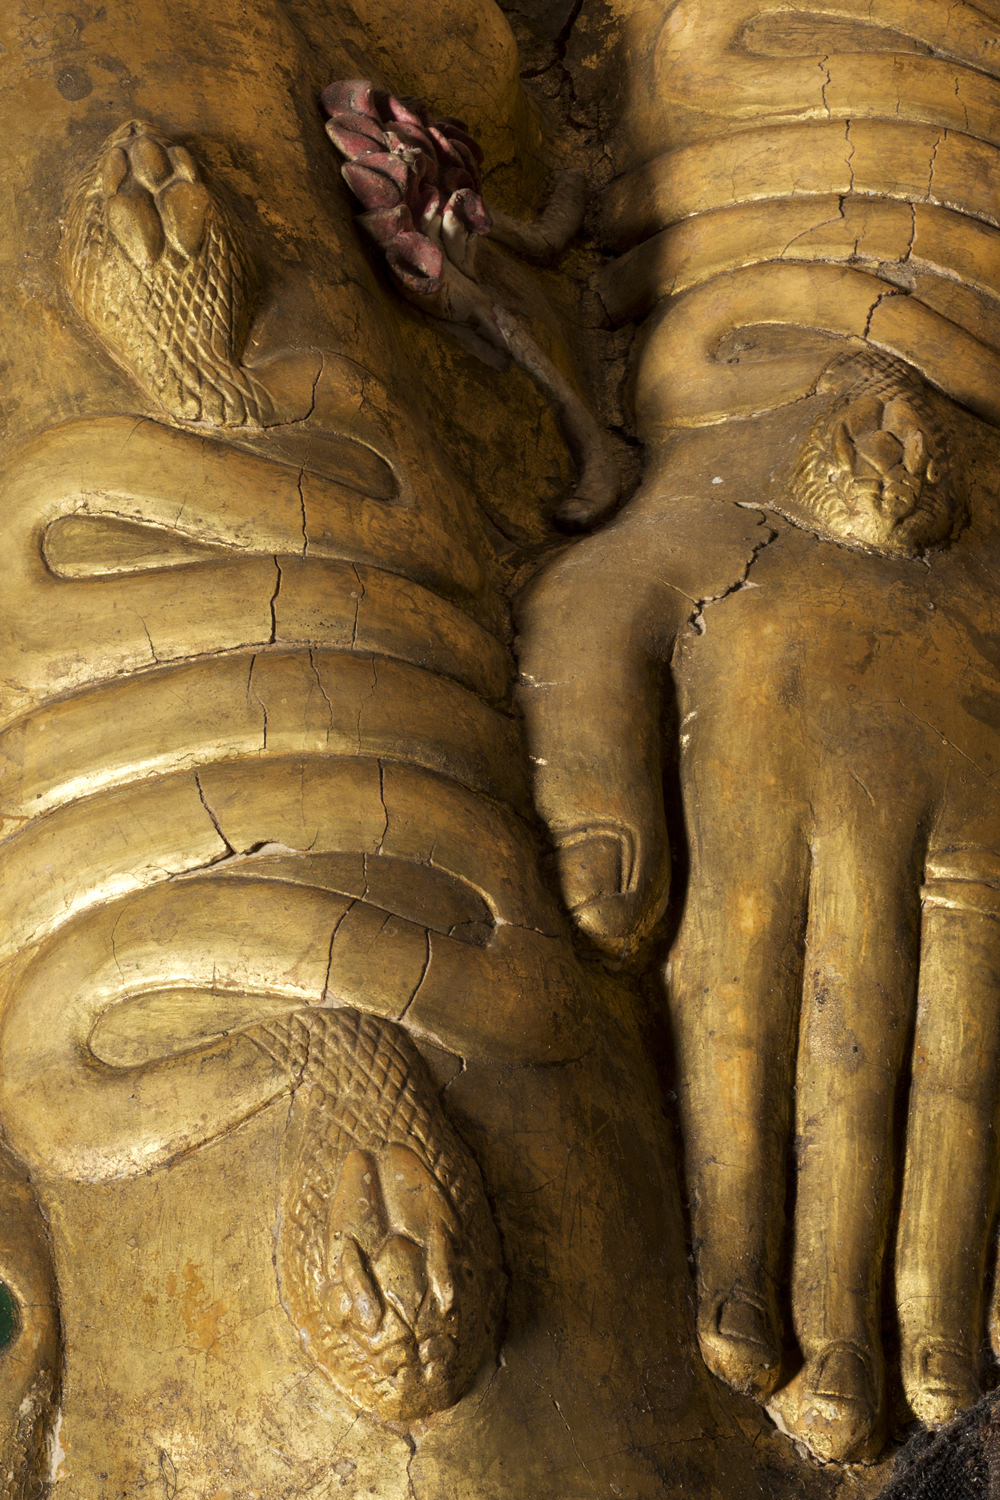 serpent armbands on a gilded ancient egyptian coffin